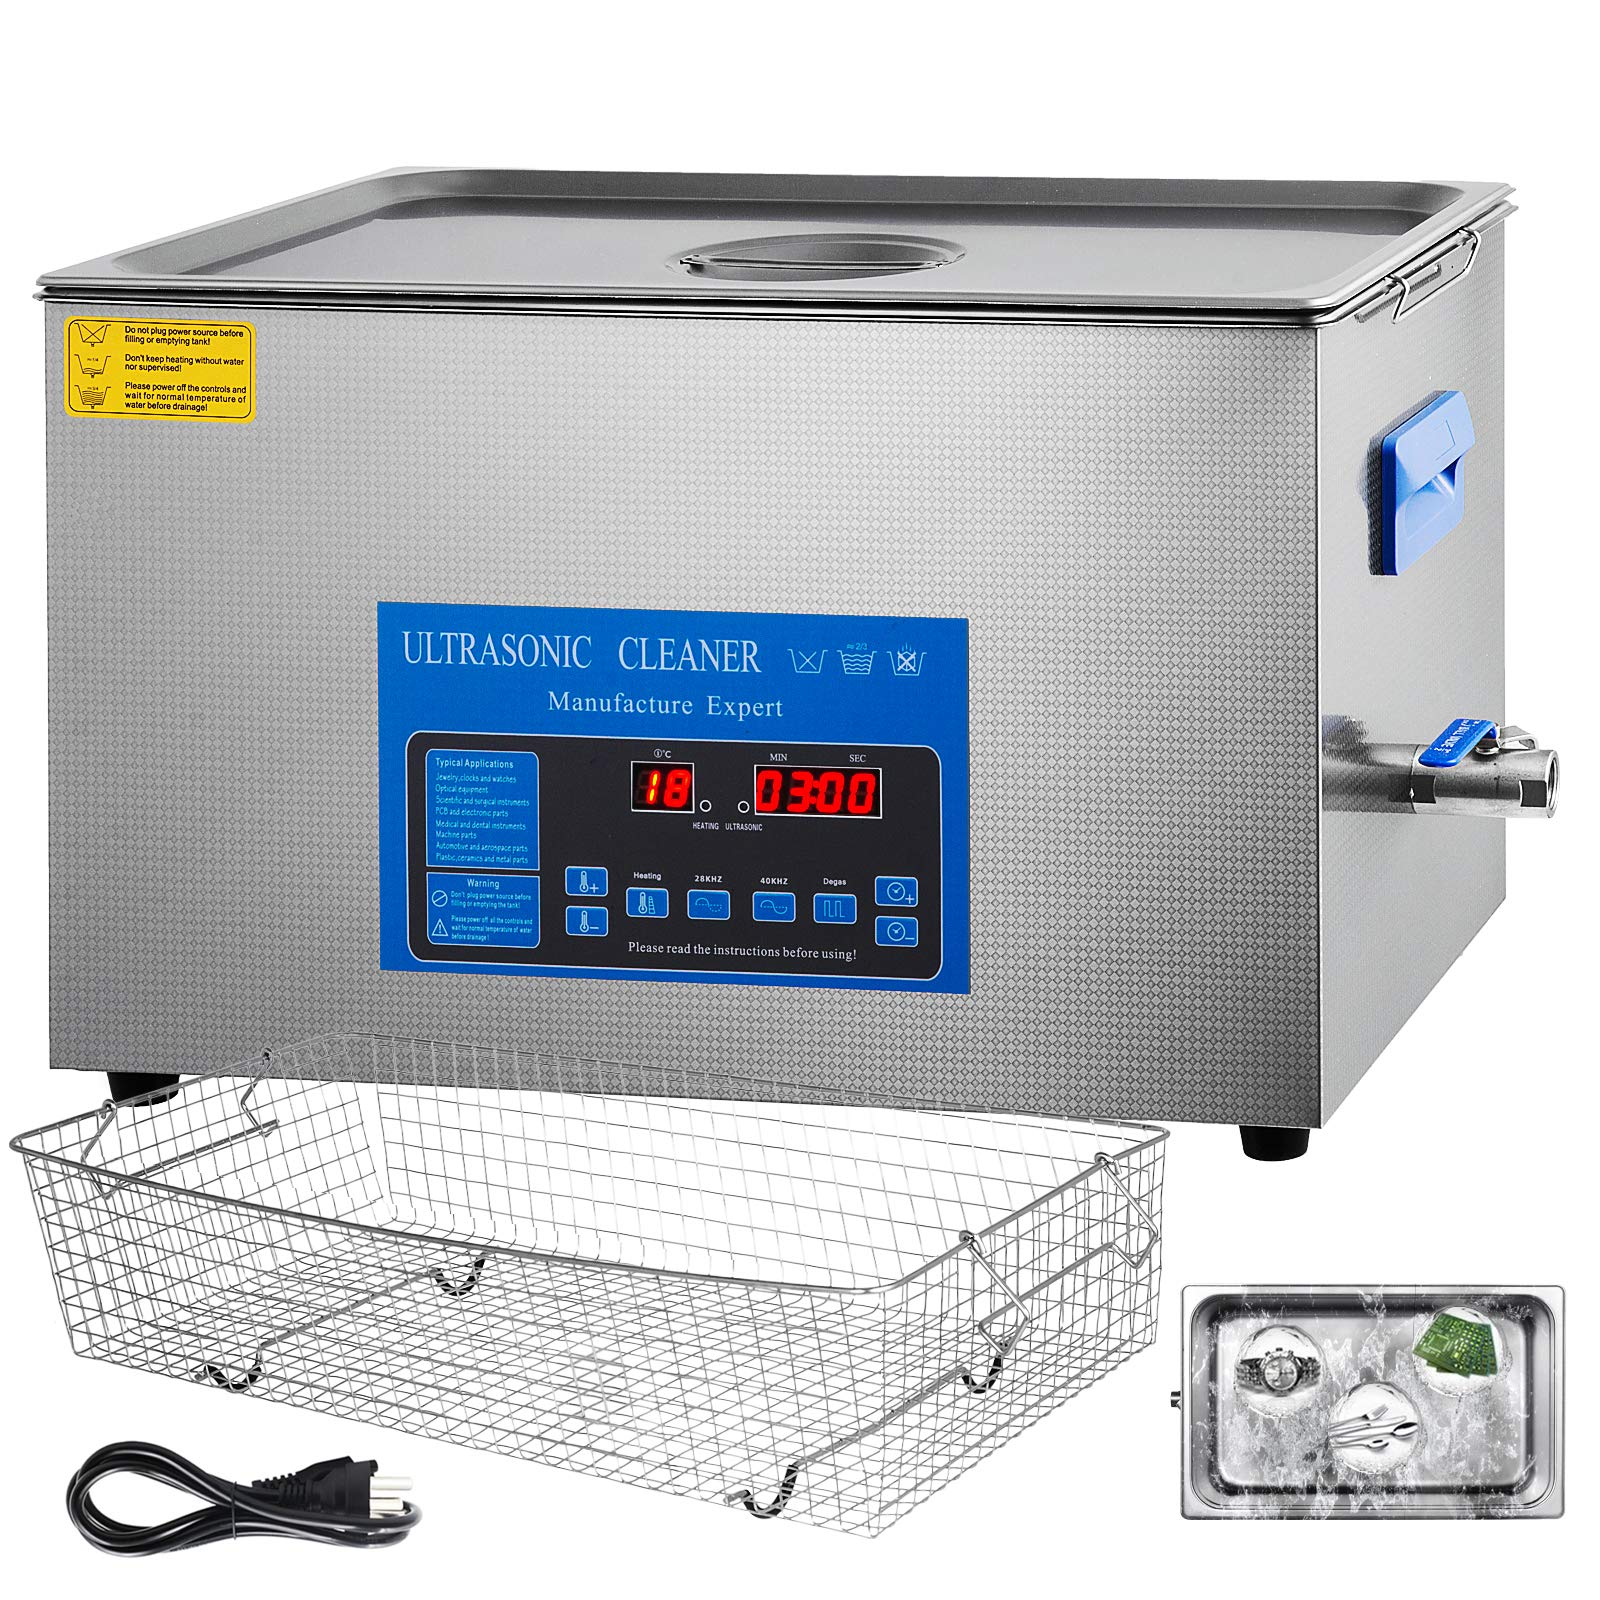 Mophorn 28/40khz Dual Frequency Ultrasonic Cleaner 304 Stainless Steel Digital Lab Ultrasonic Cleaners with Heater Timer for Jewelry Watch Glasses Circuit Board Small Parts Dental Instrument(22L)